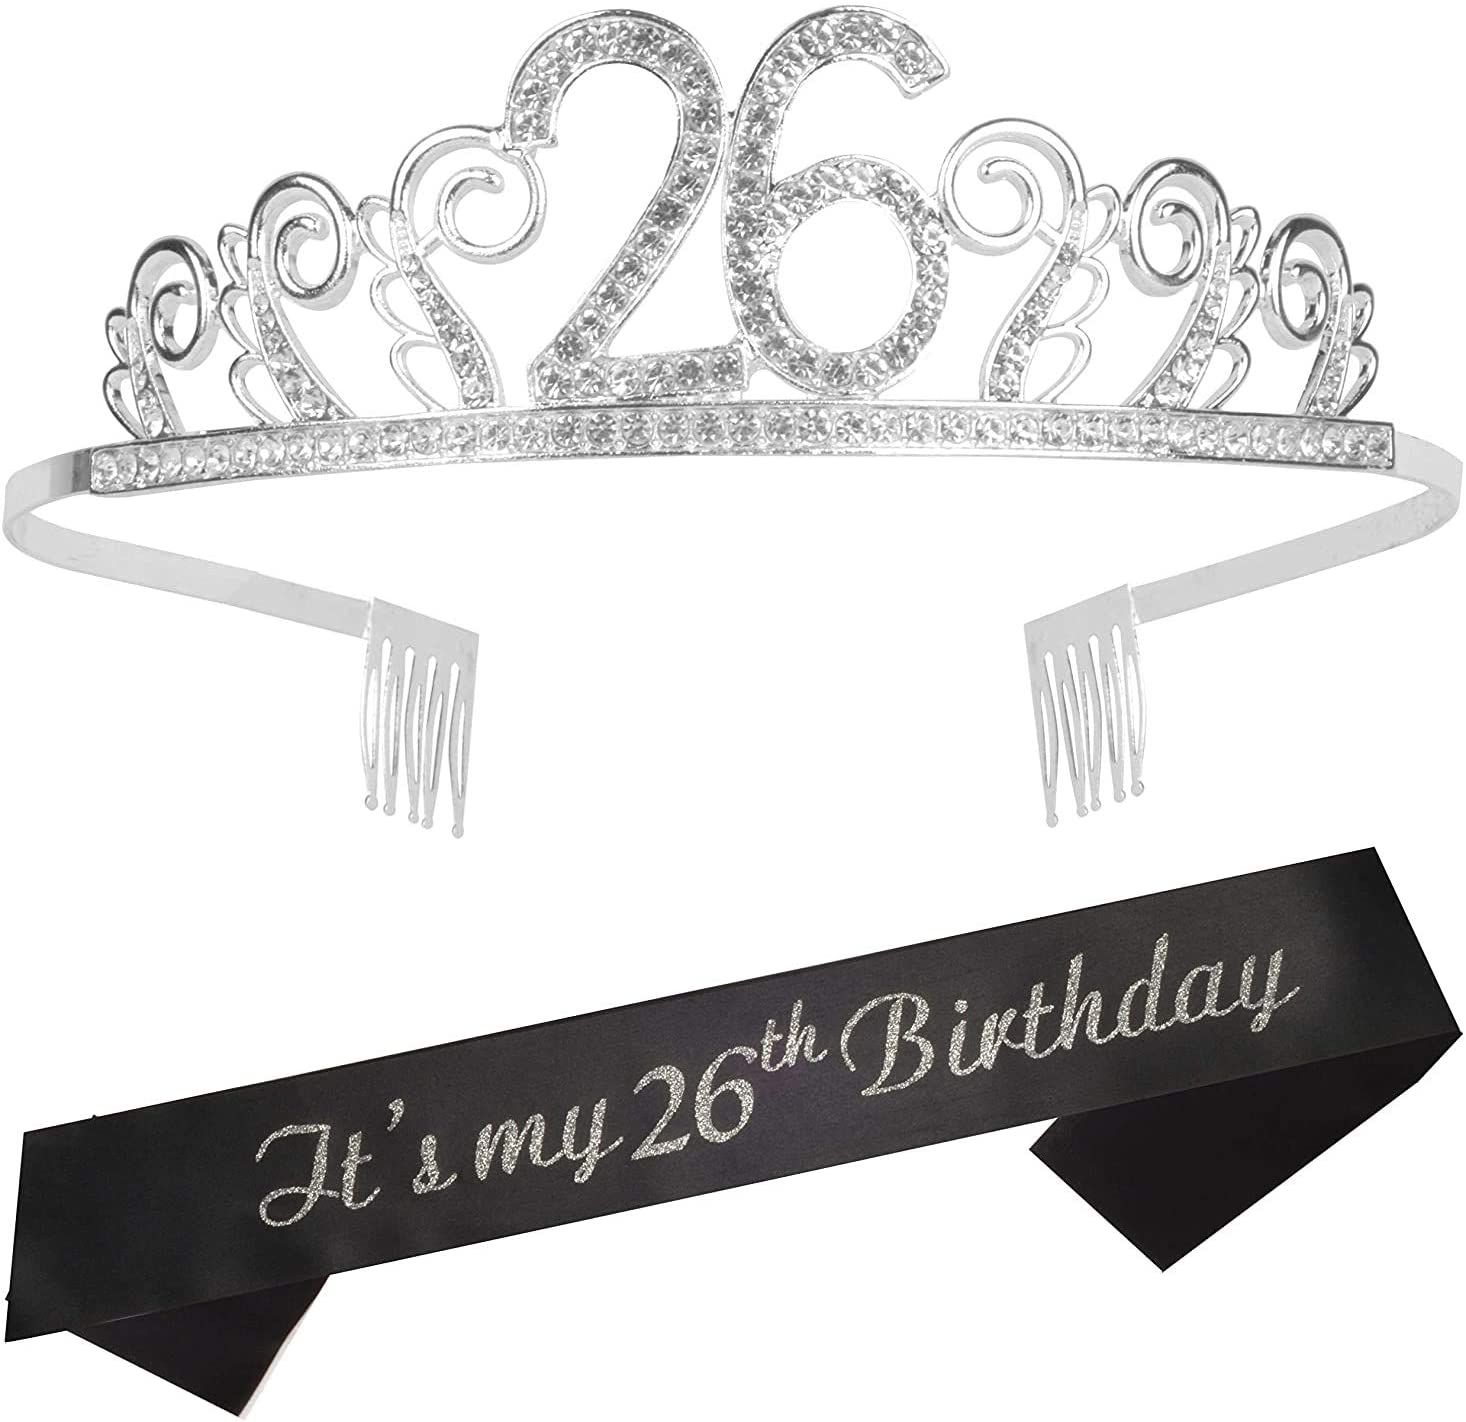 26th Birthday Gifts for Women, 26th Birthday Tiara and Sash, 26th Birthday Party Supplies, It's My 26th Birthday Sash and Tiara Birthday Crown for 26th Birthday Party Supplies and Decorations